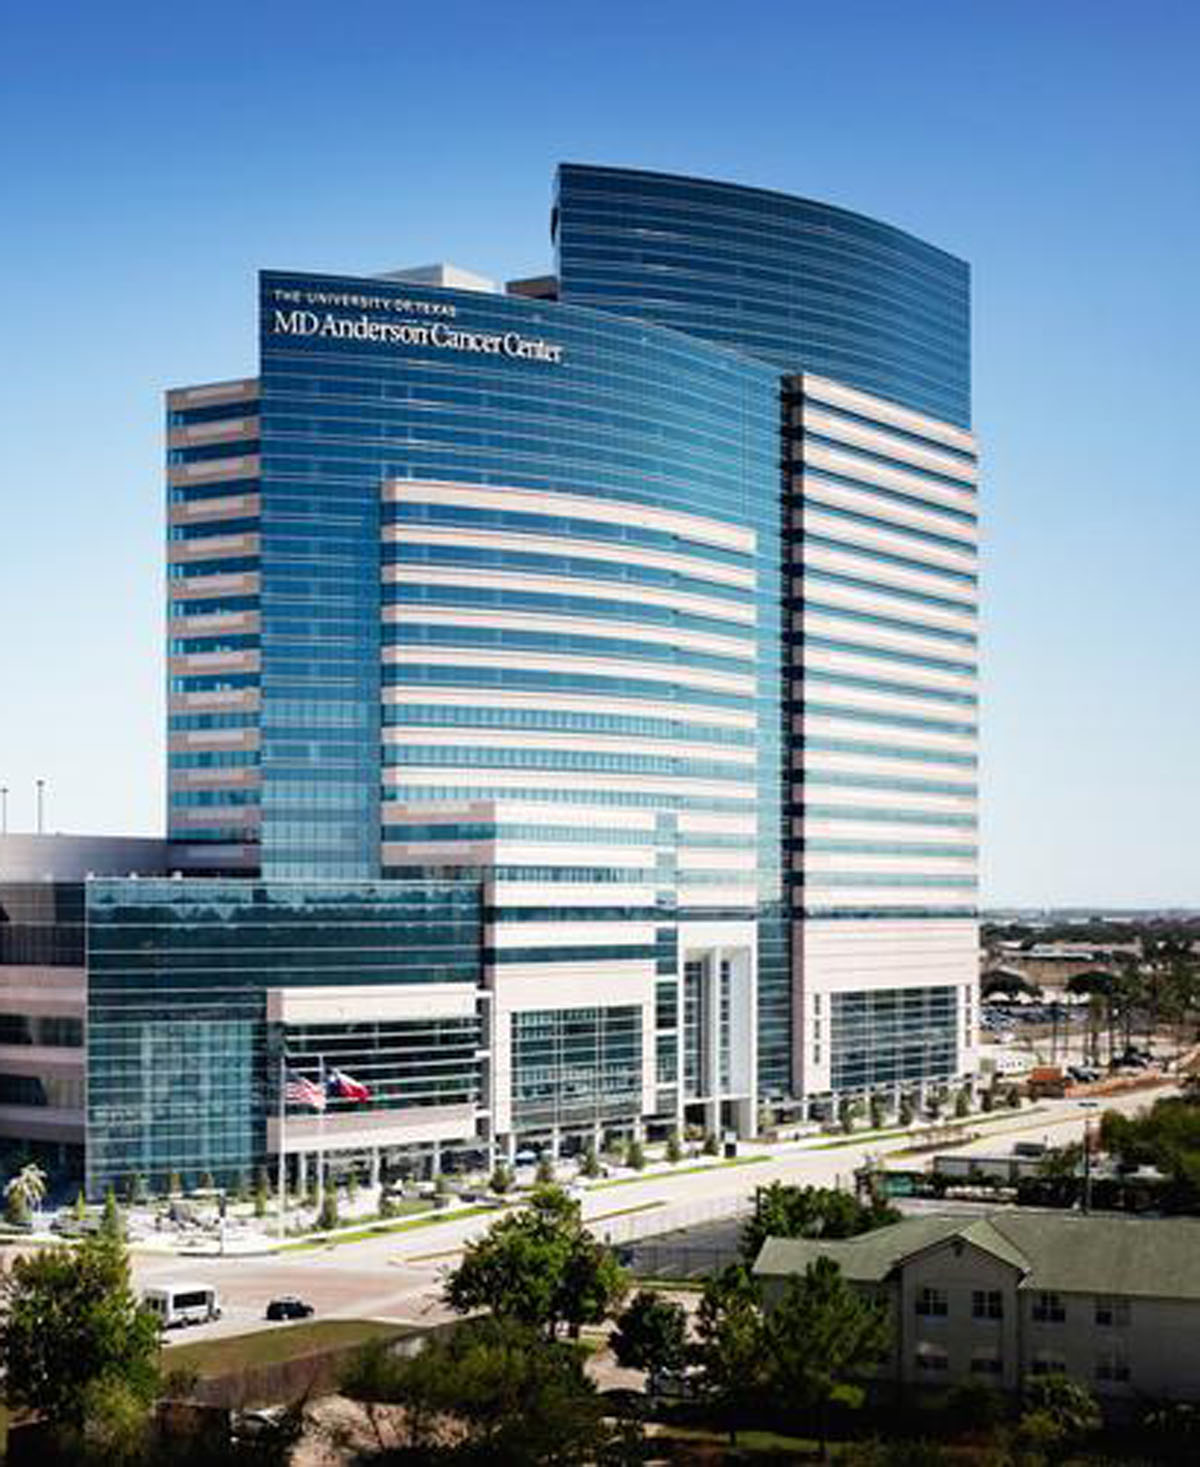 Md Anderson South Campus Research Building